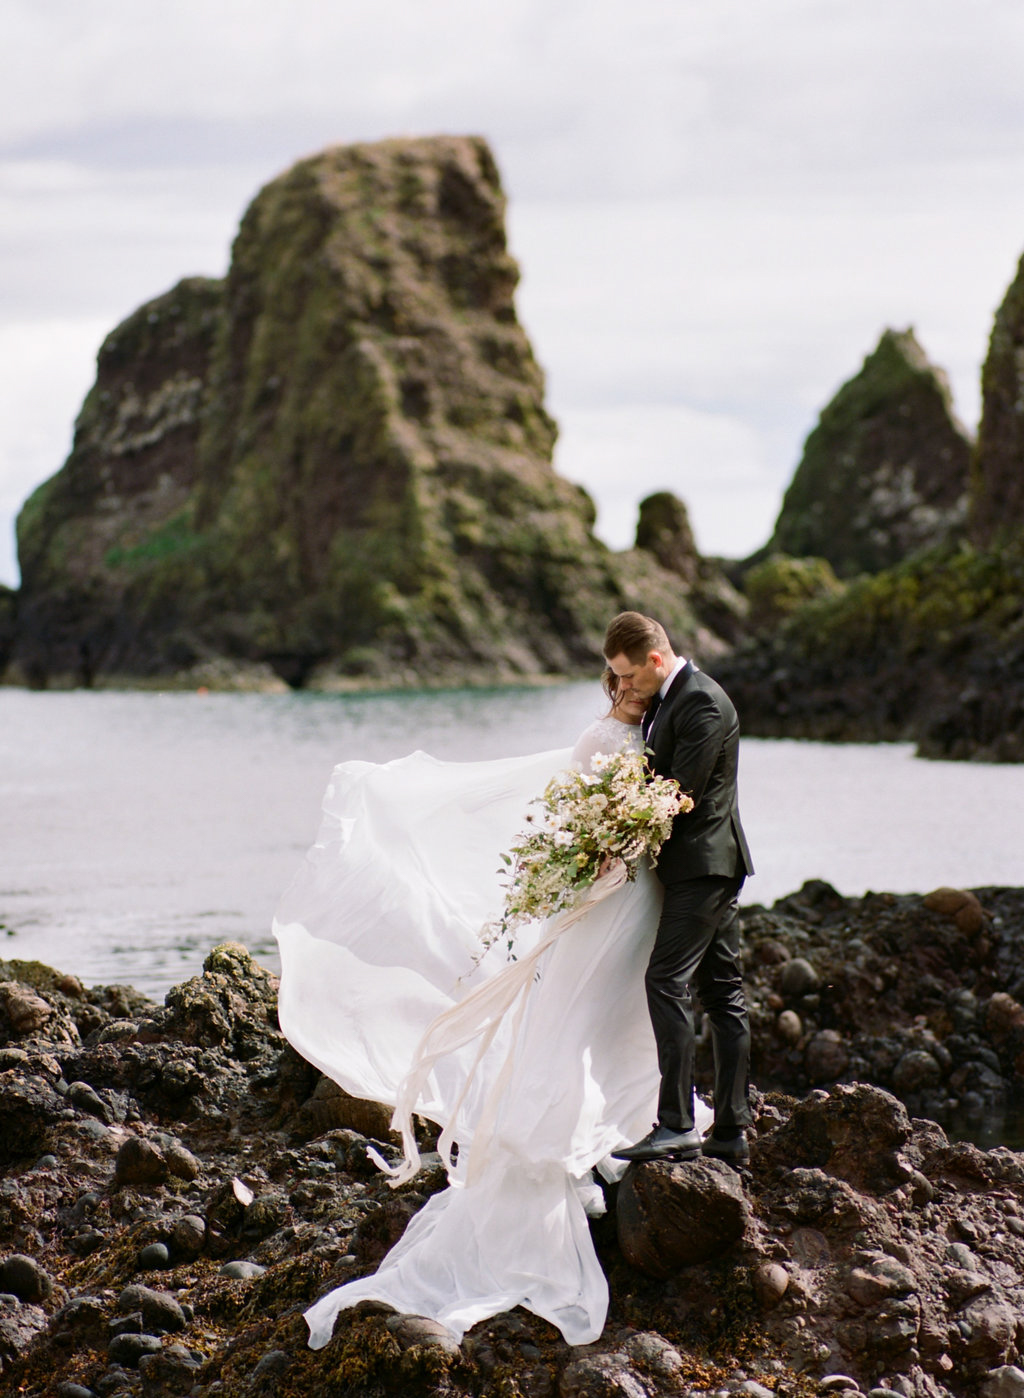 Scotland-Prewedding-highlands-castle-Engagment-Photos-Katie-Grant (138 of 139).jpg